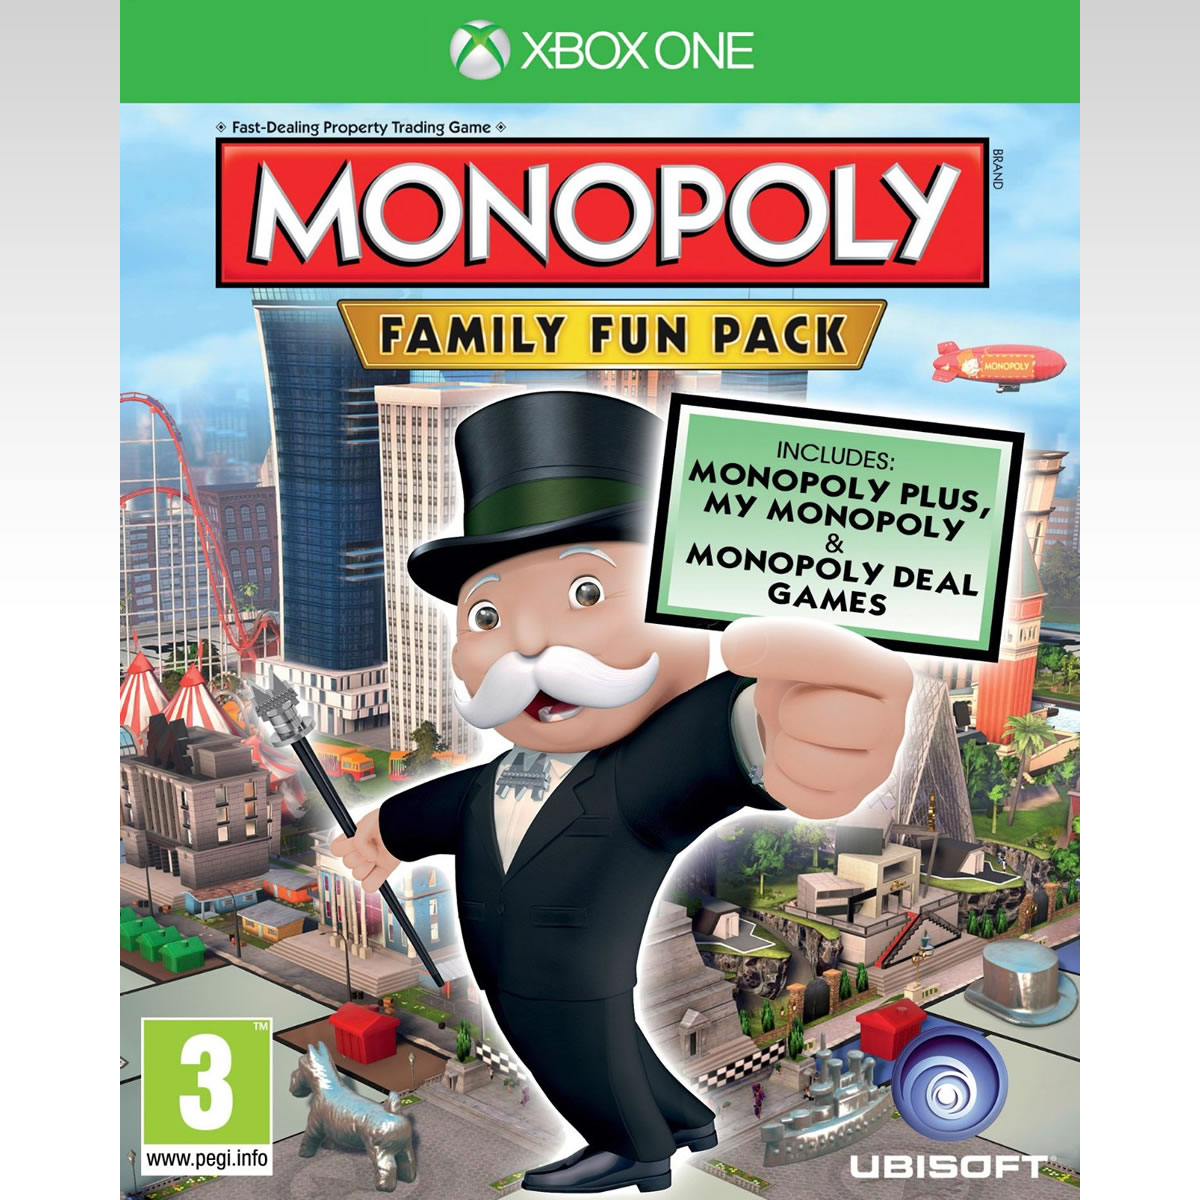 MONOPOLY FAMILY FUN PACK - DELUXE EDITION (XBOX ONE)